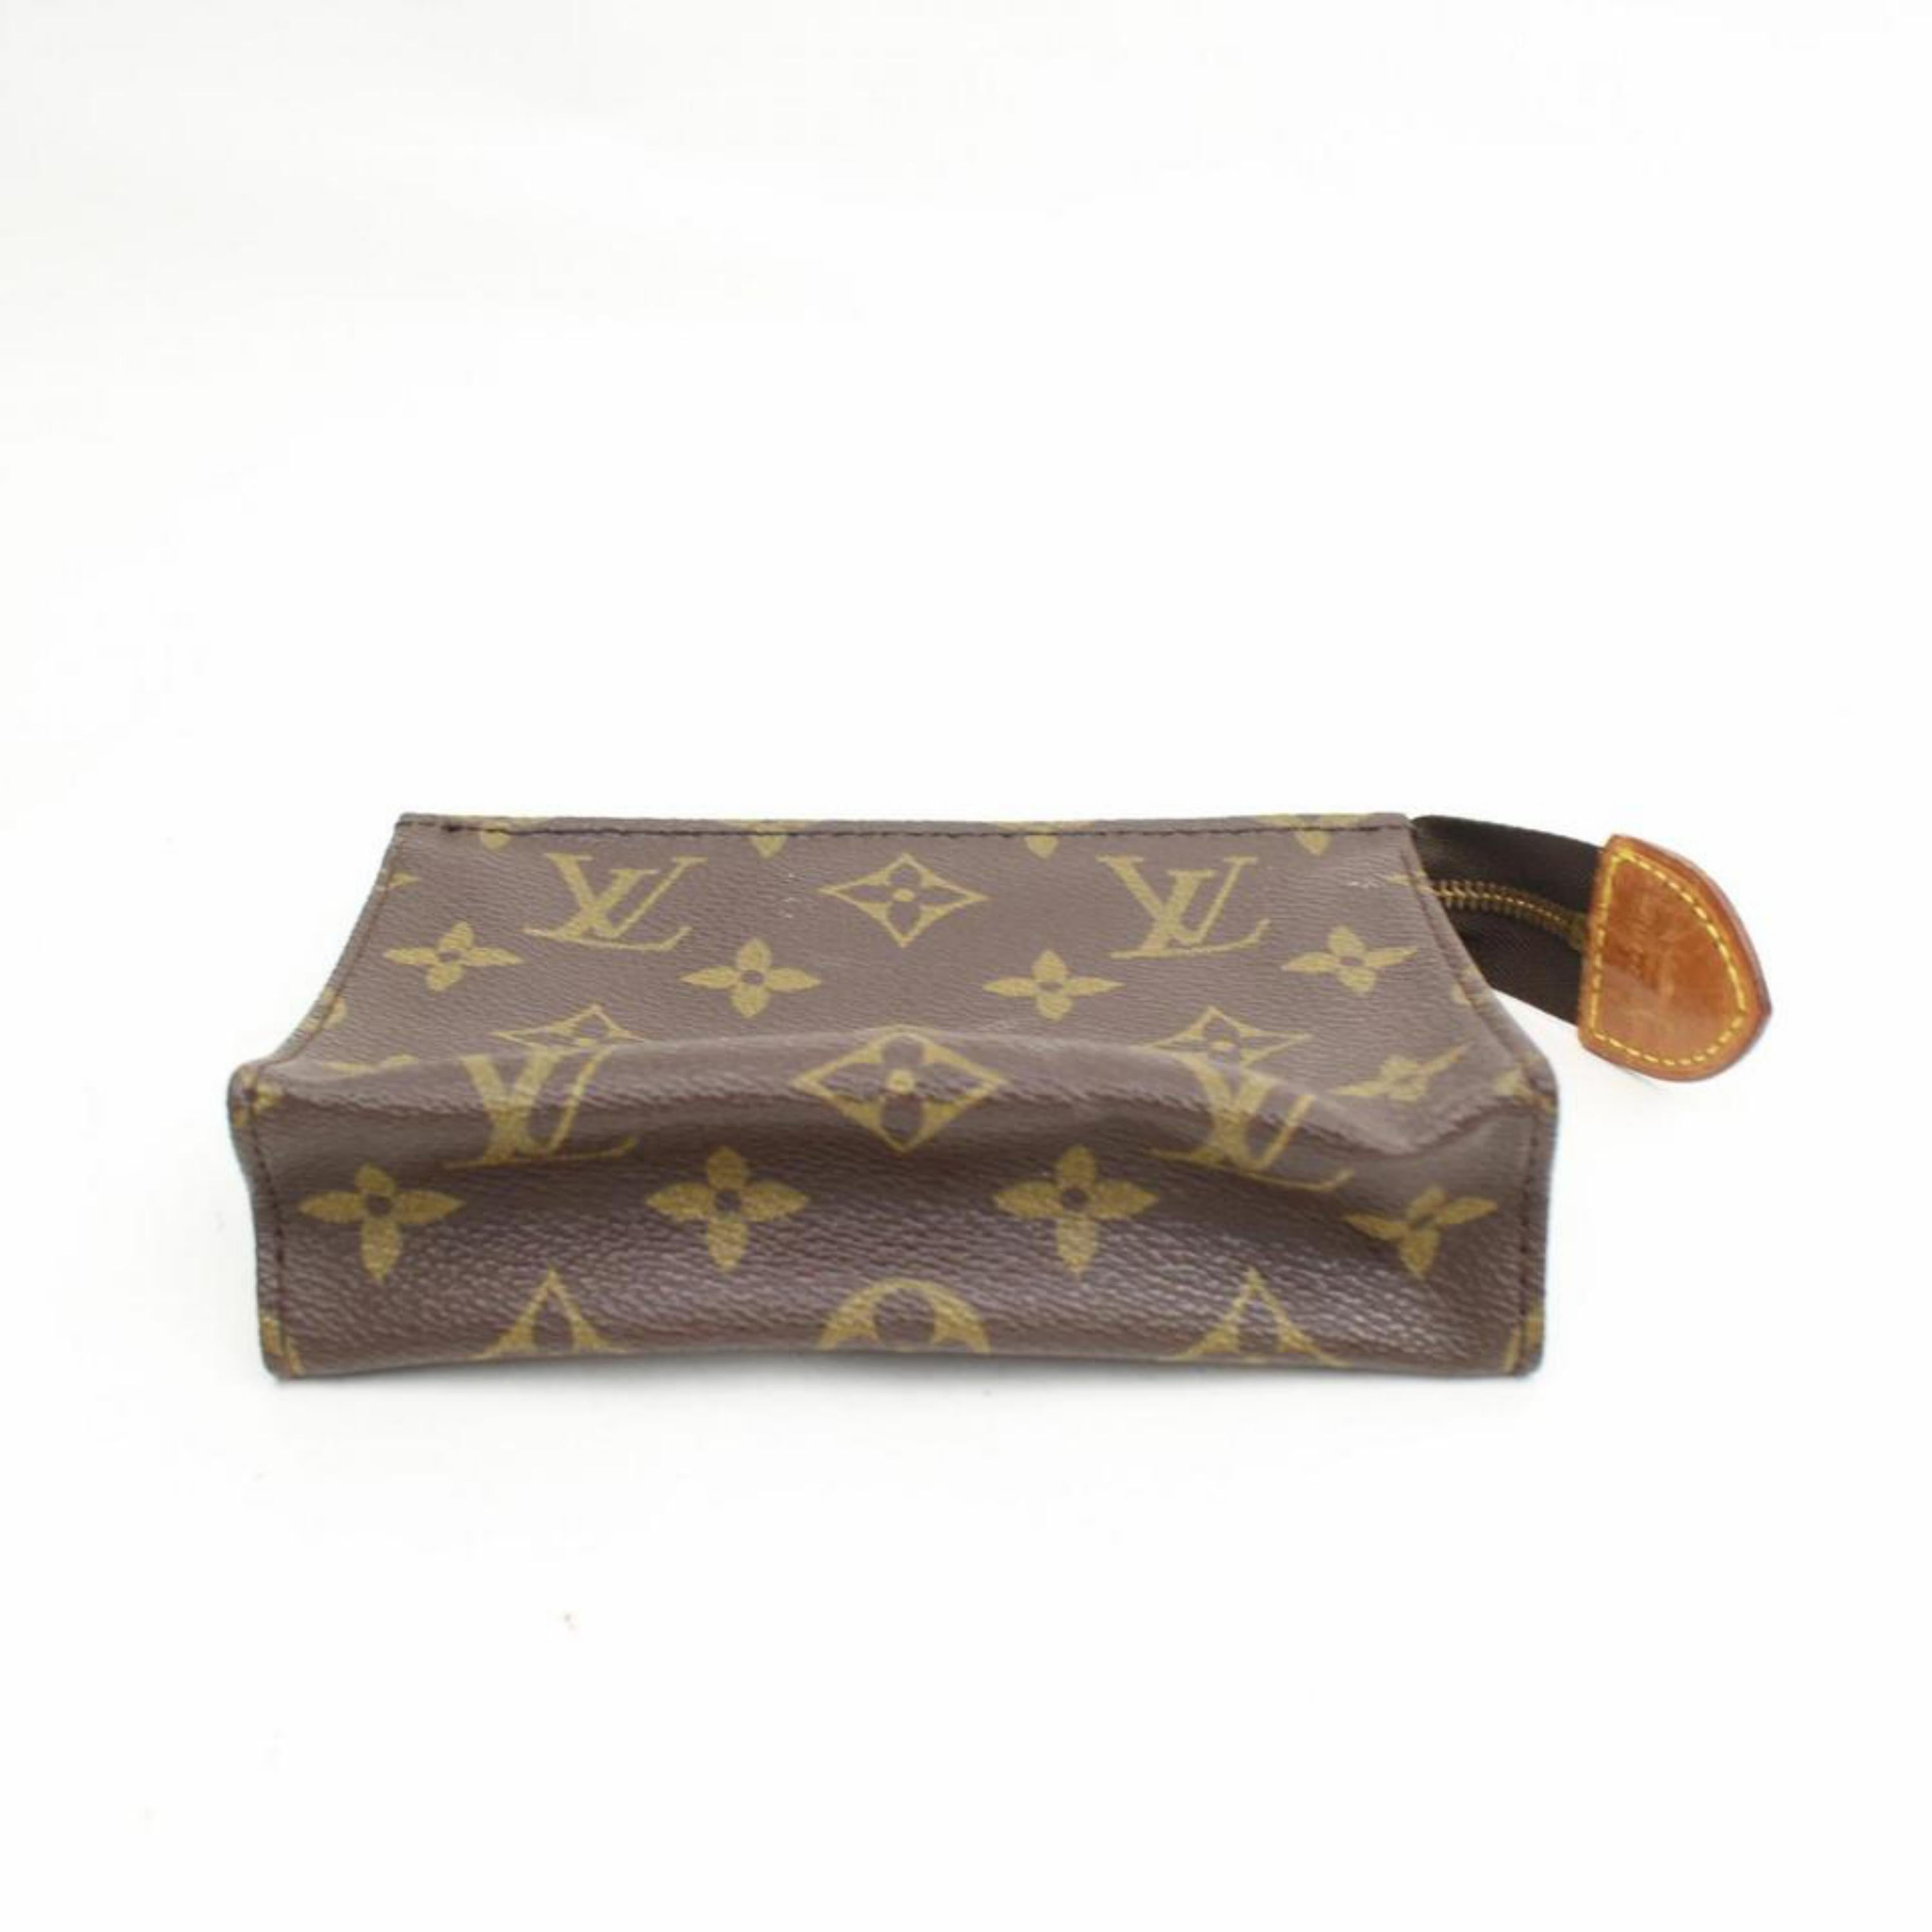 9eb590f3818c Louis Vuitton Brown Poche Monogram Toiletry Pouch 15 Toilette 868086  Cosmetic Ba For Sale at 1stdibs